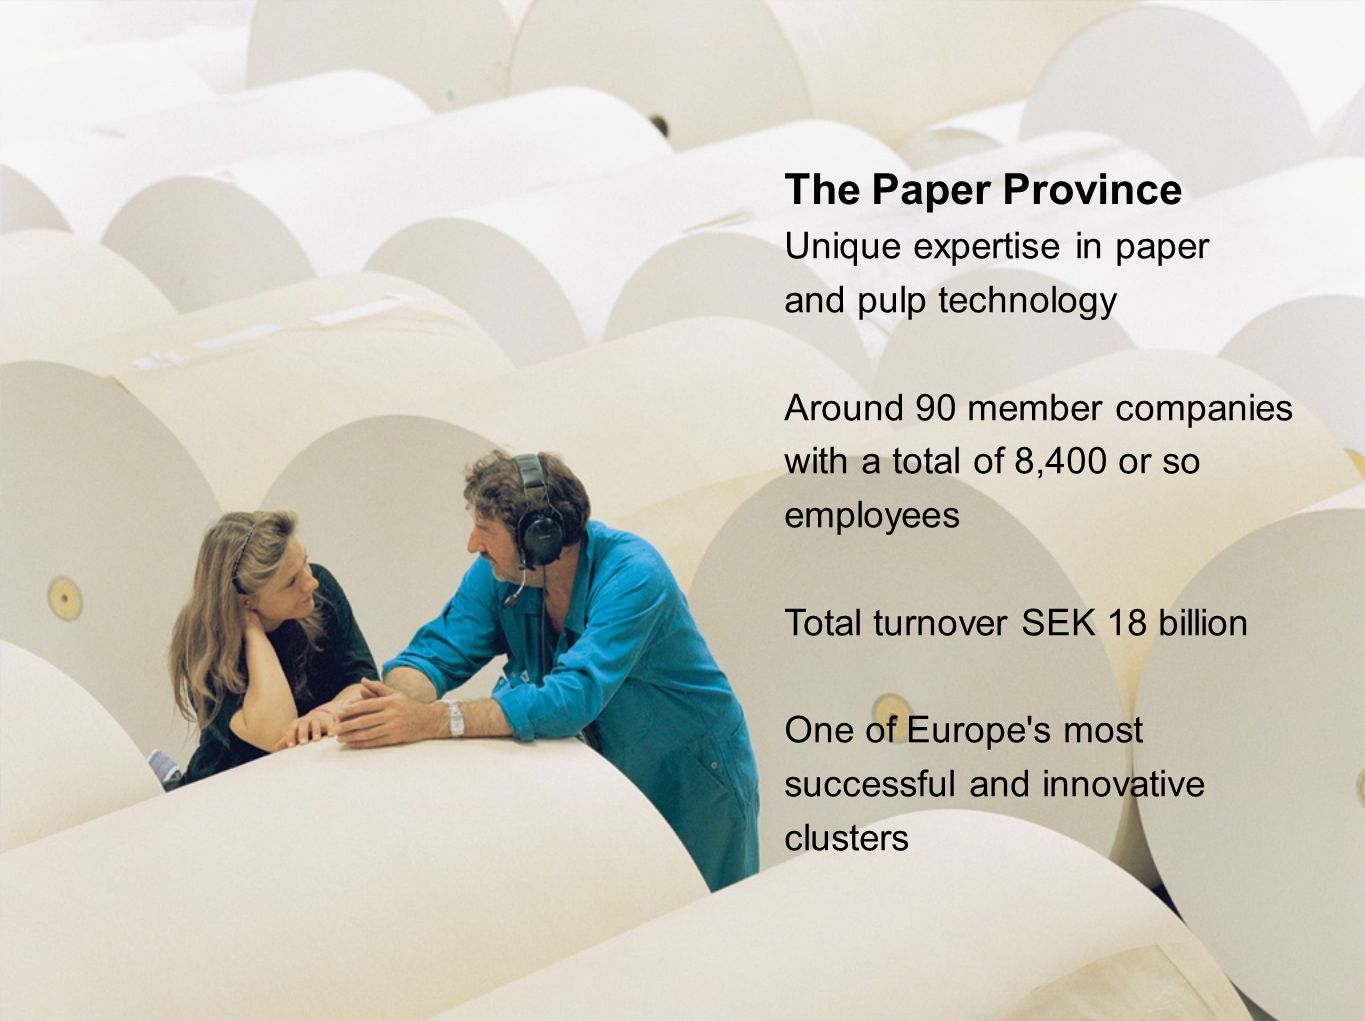 The Paper Province Unique expertise in paper and pulp technology Around 90 member companies with a total of 8,400 or so employees Total turnover SEK 1